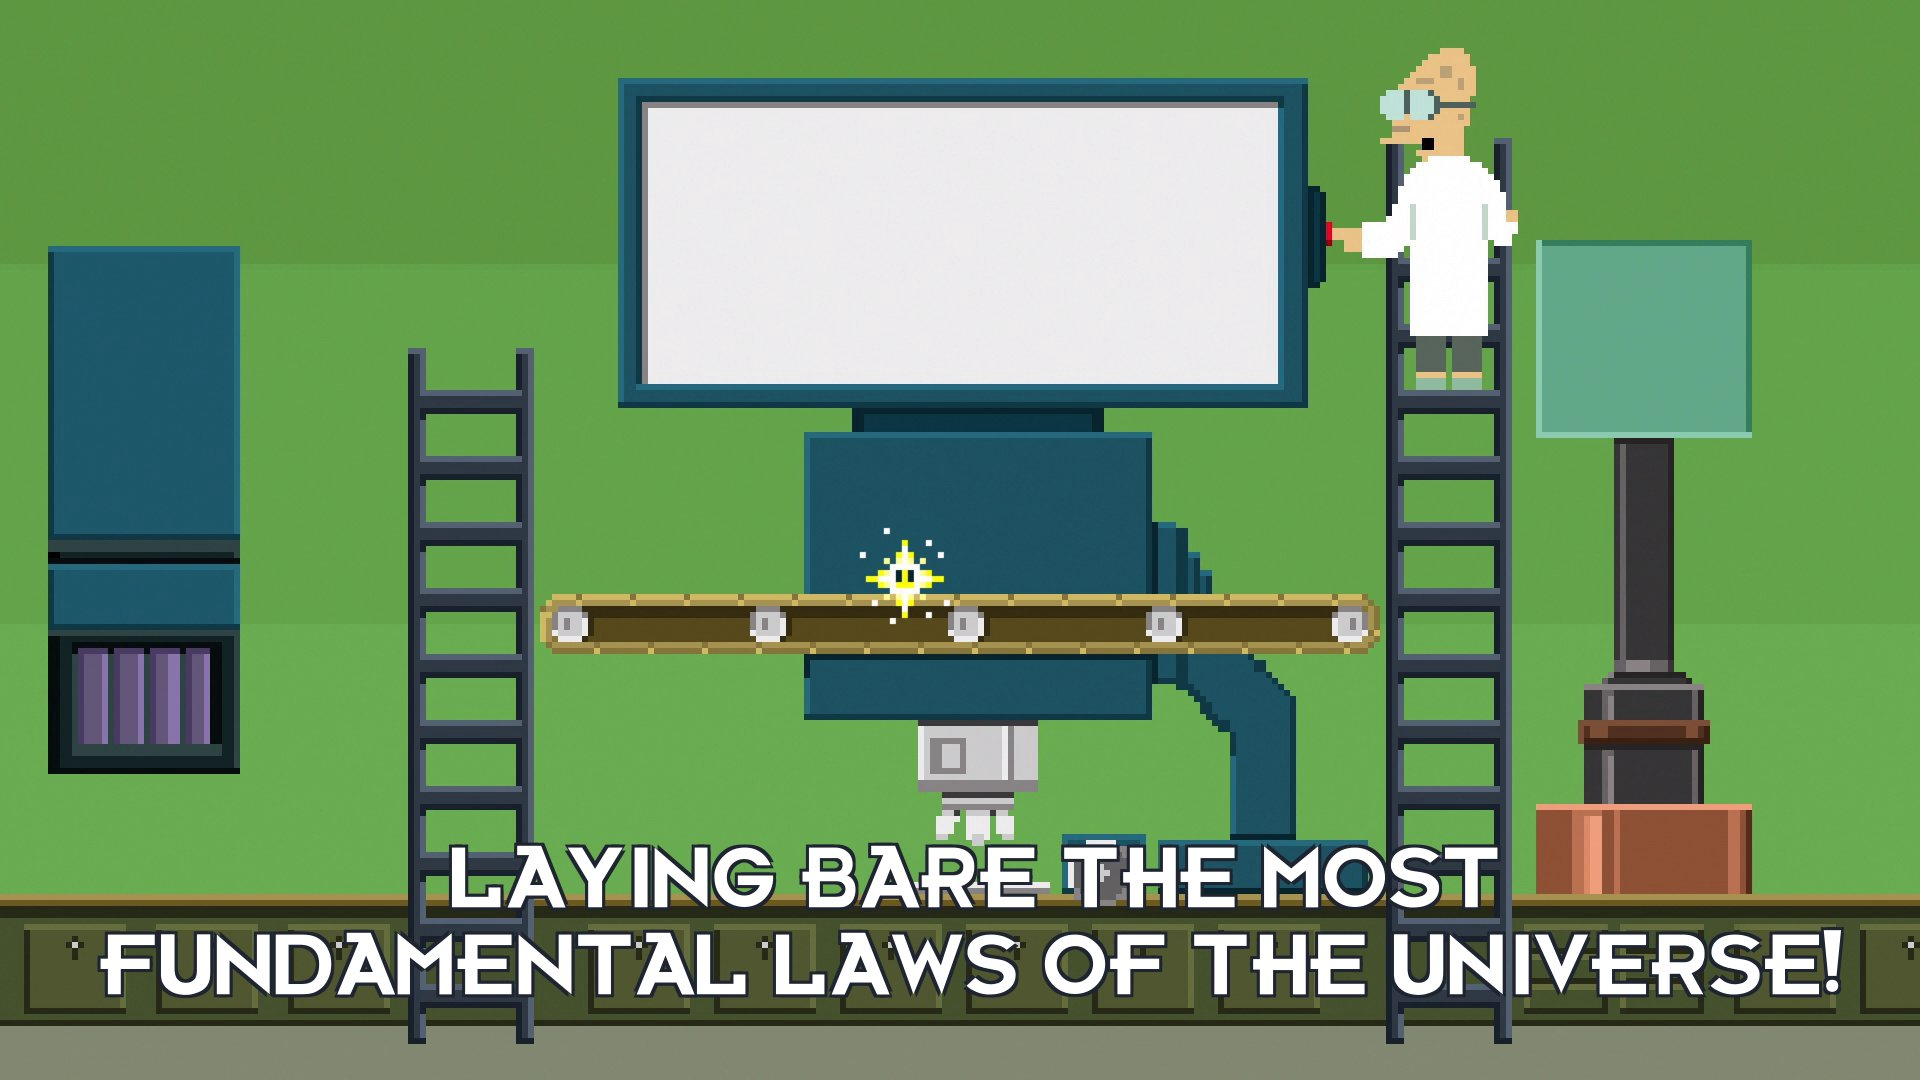 Prof Hubert J Farnsworth: Laying bare the most fundamental laws of the Universe!